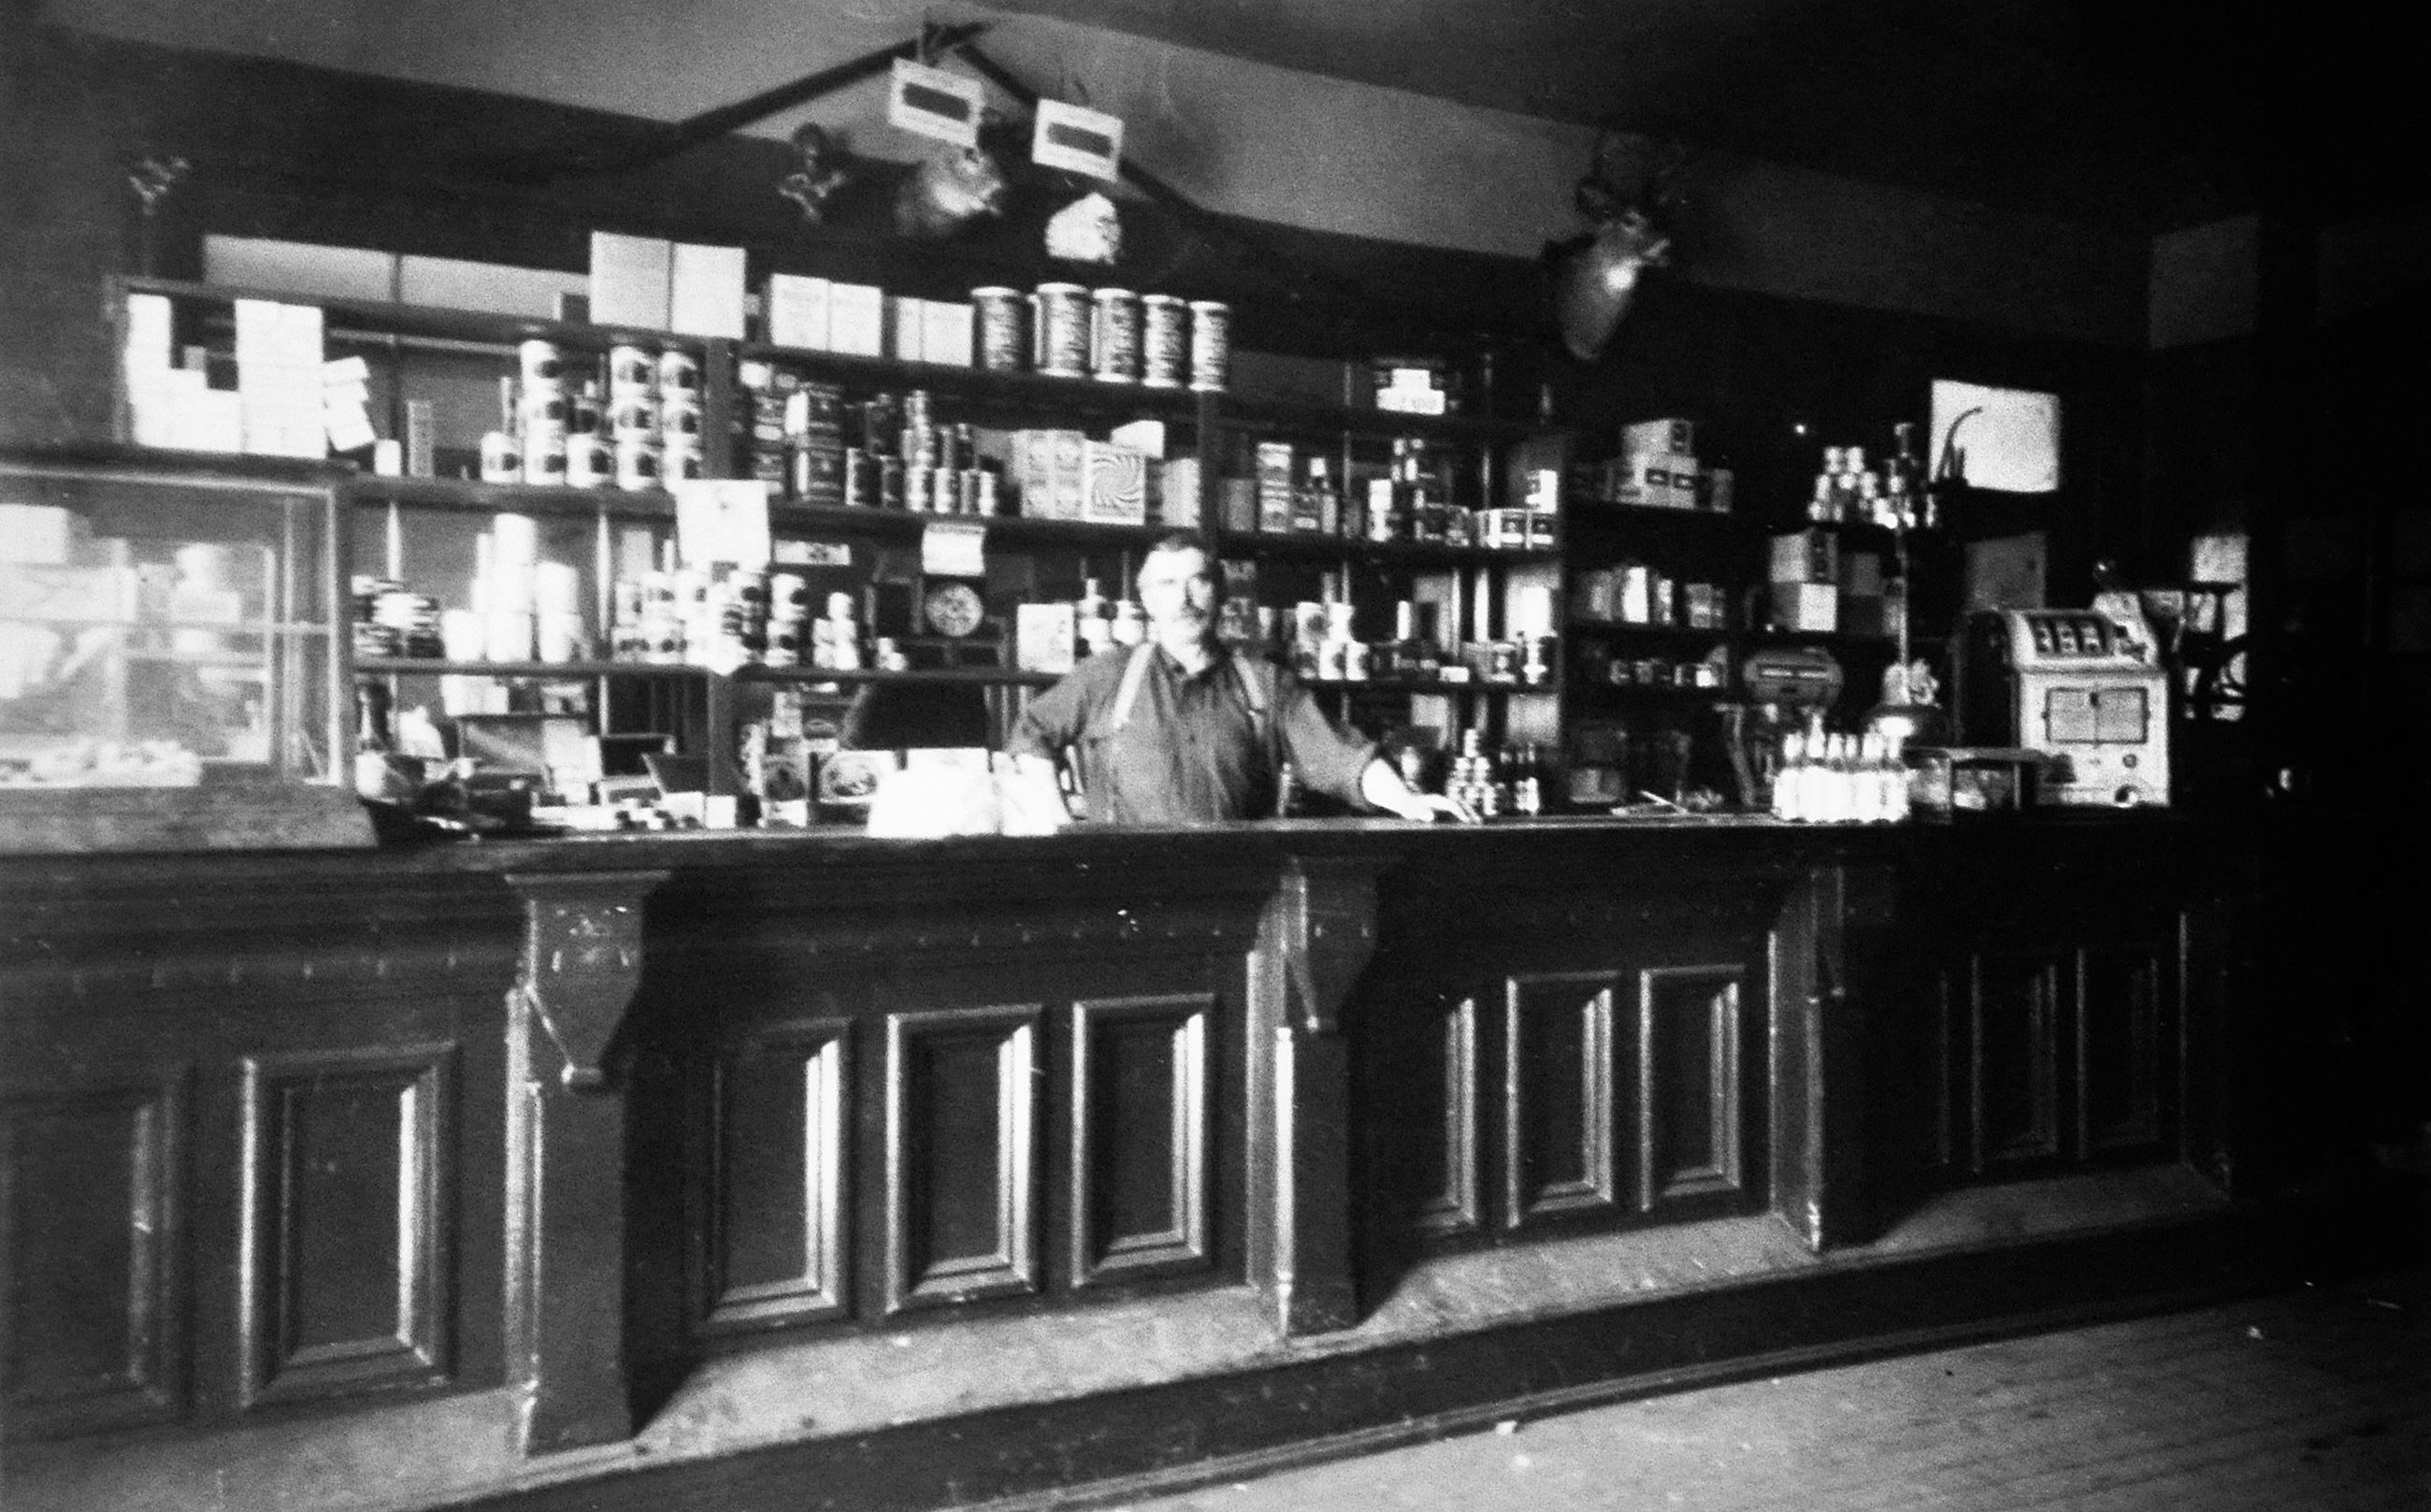 Storekeeper at Fridley Liquor, Old Photos